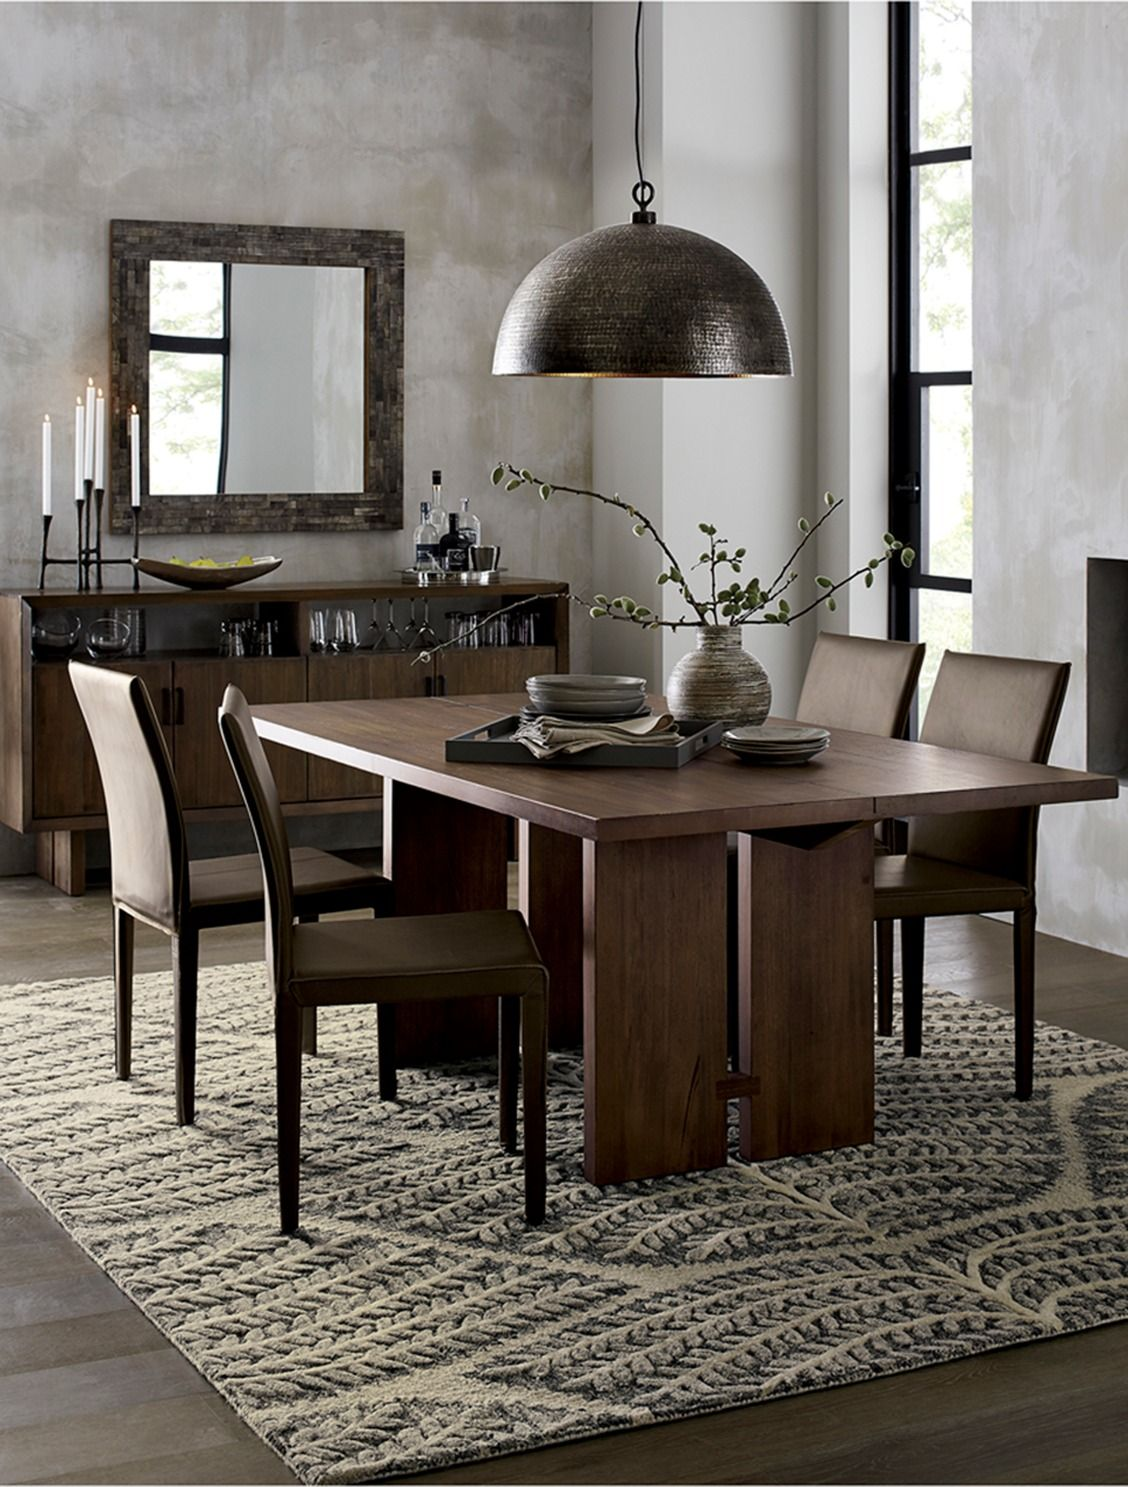 What dining table to choose for the kitchen